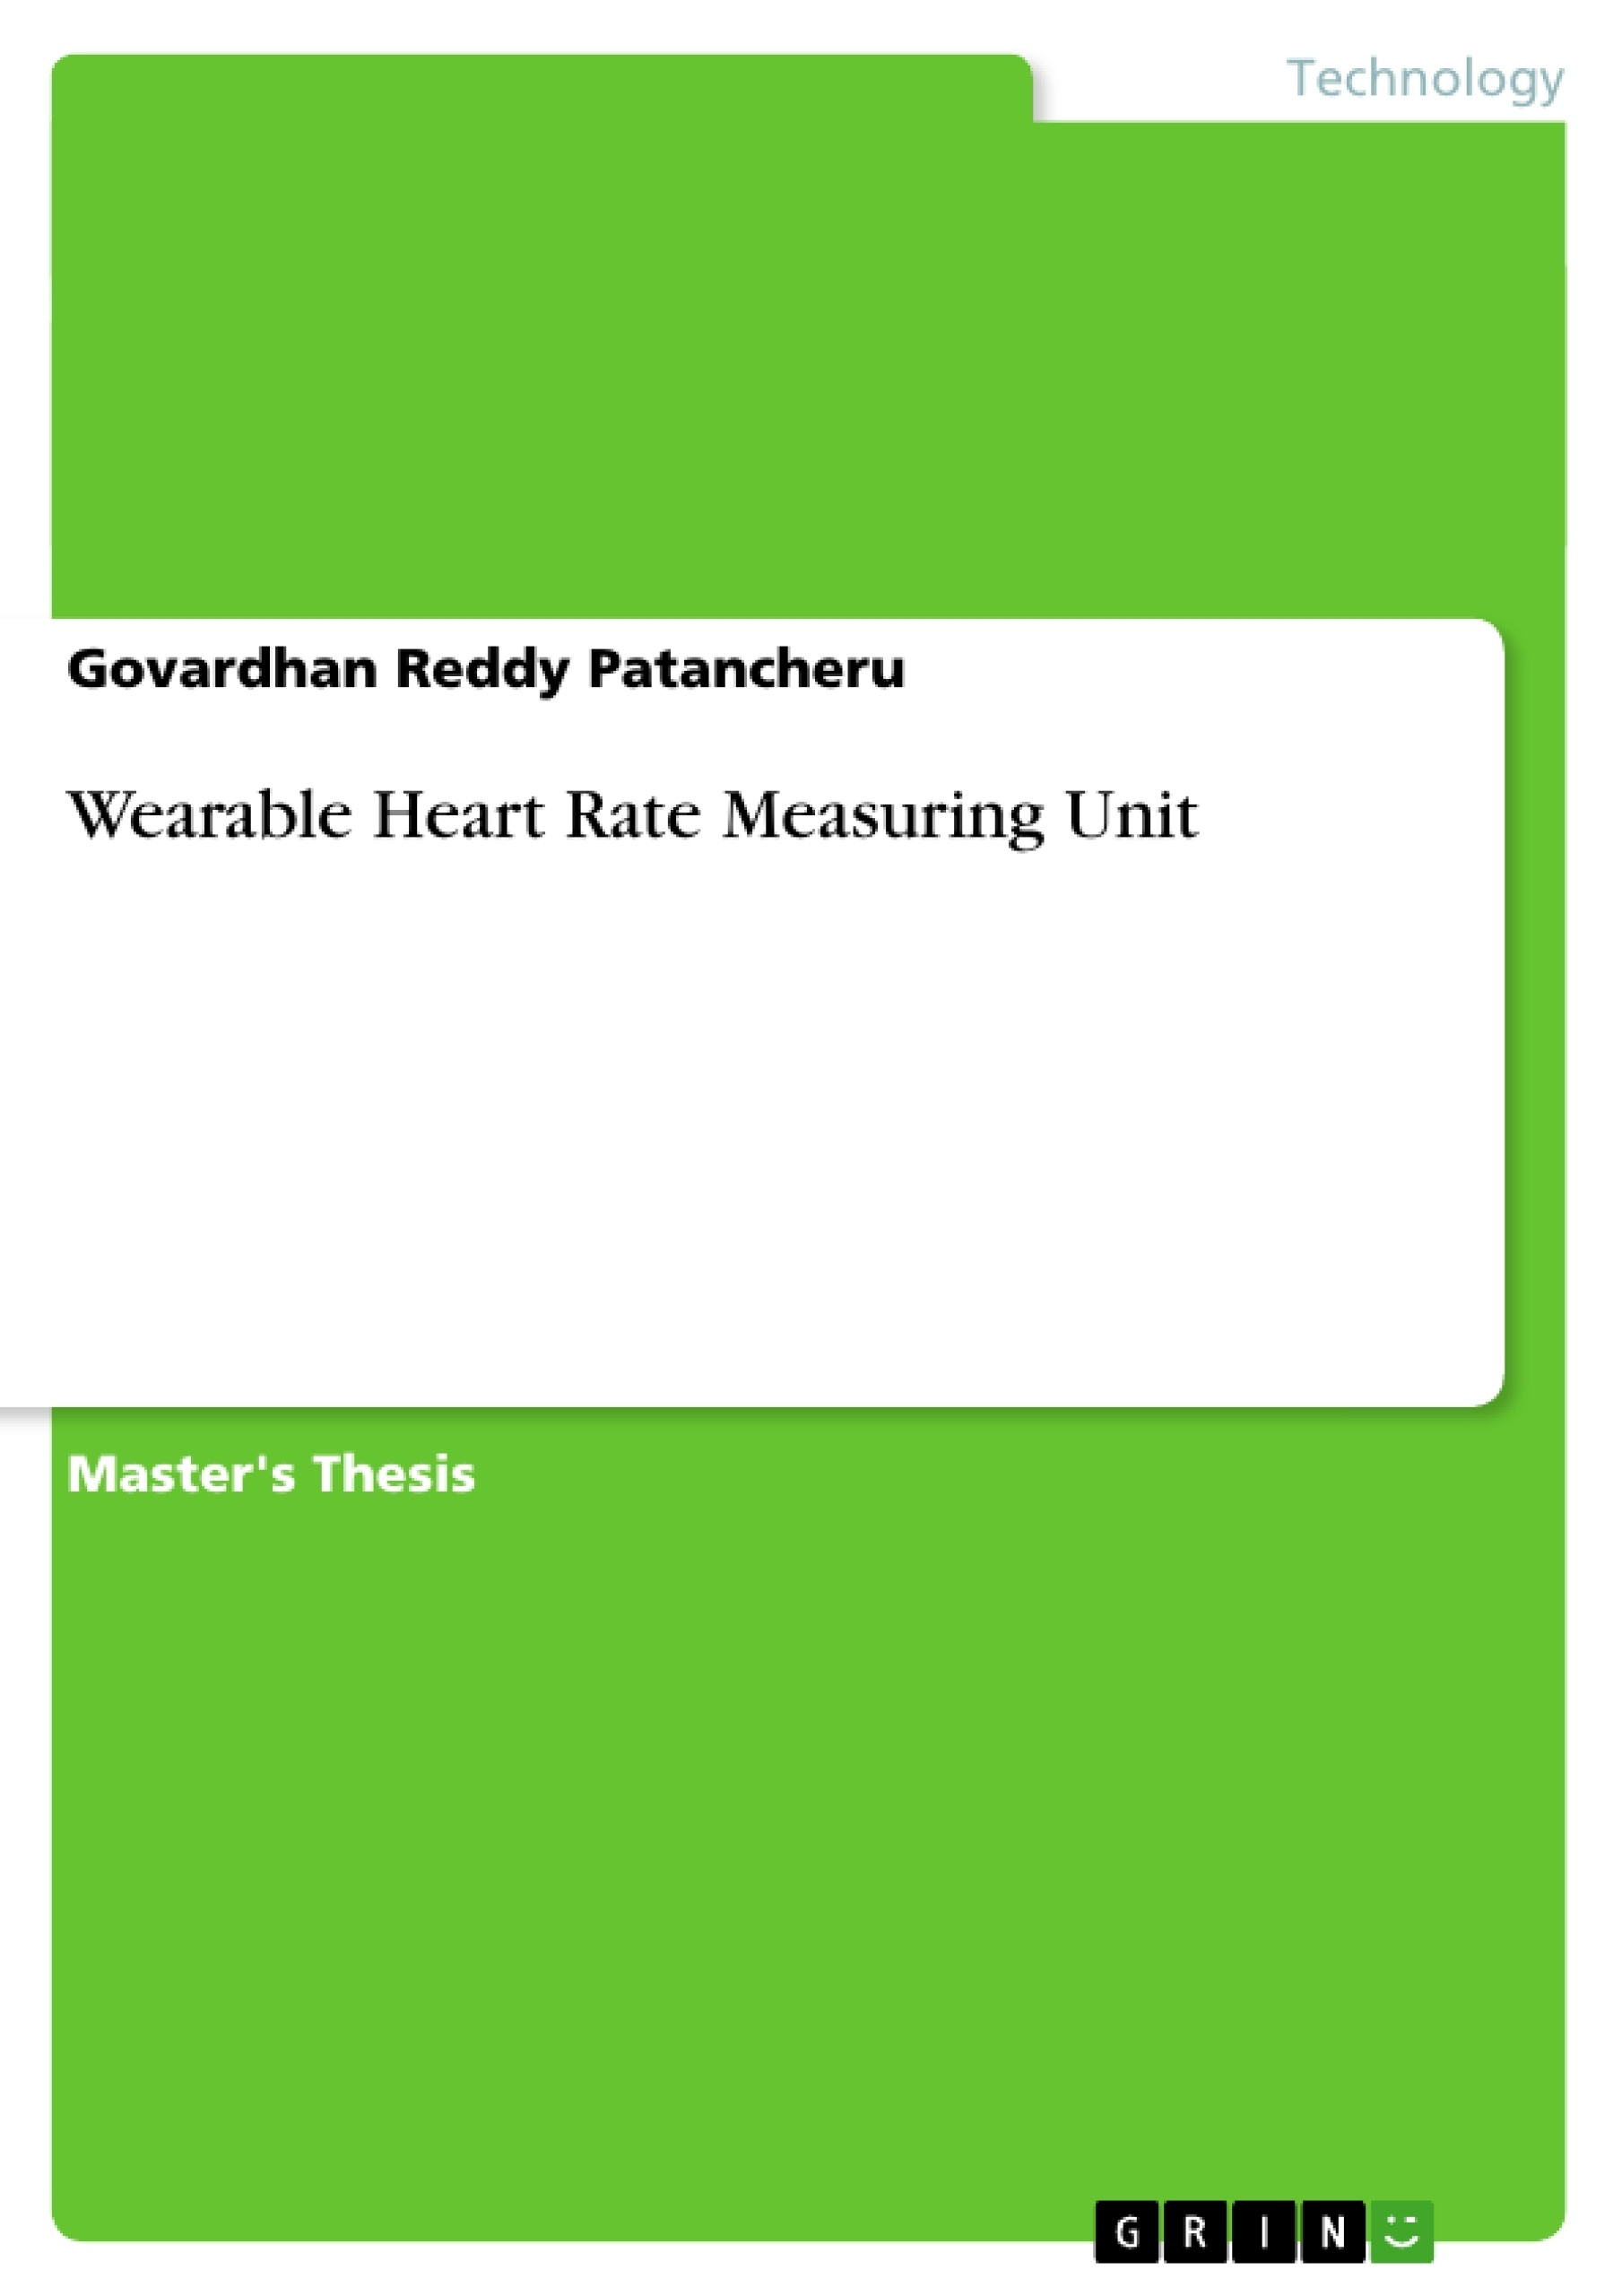 Title: Wearable Heart Rate Measuring Unit